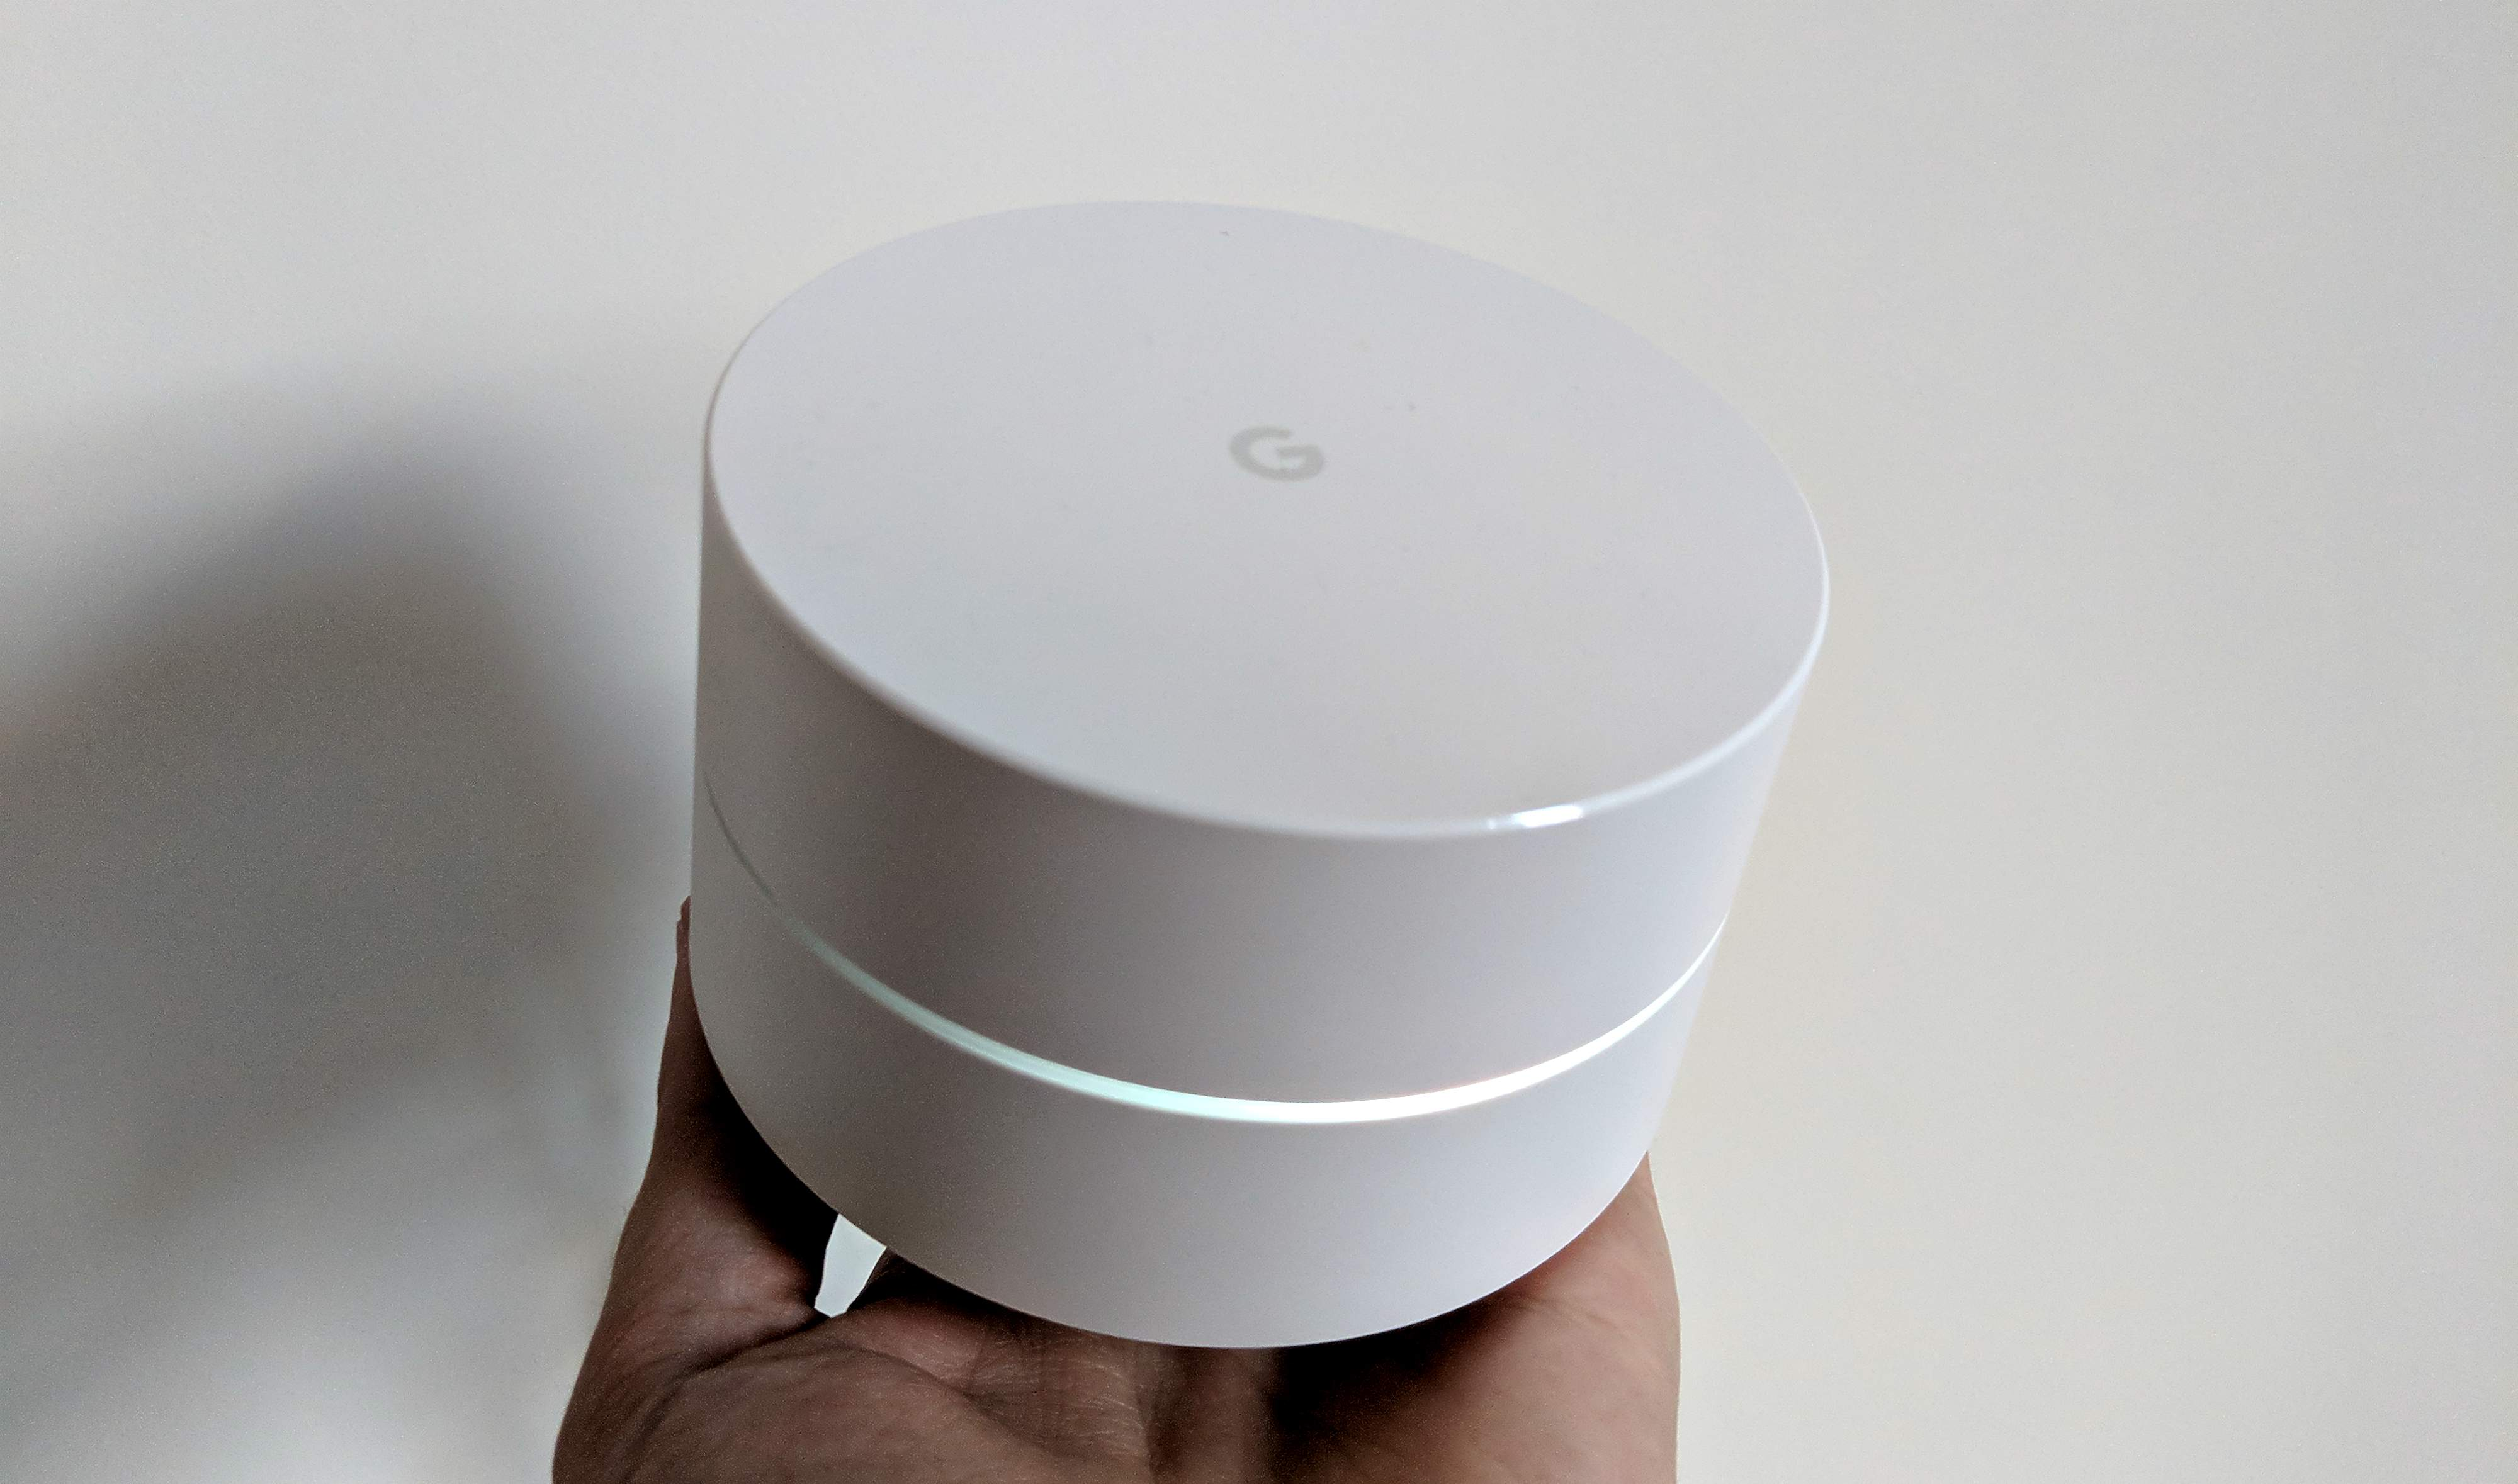 Google WiFi, the intelligent router that gives the user full